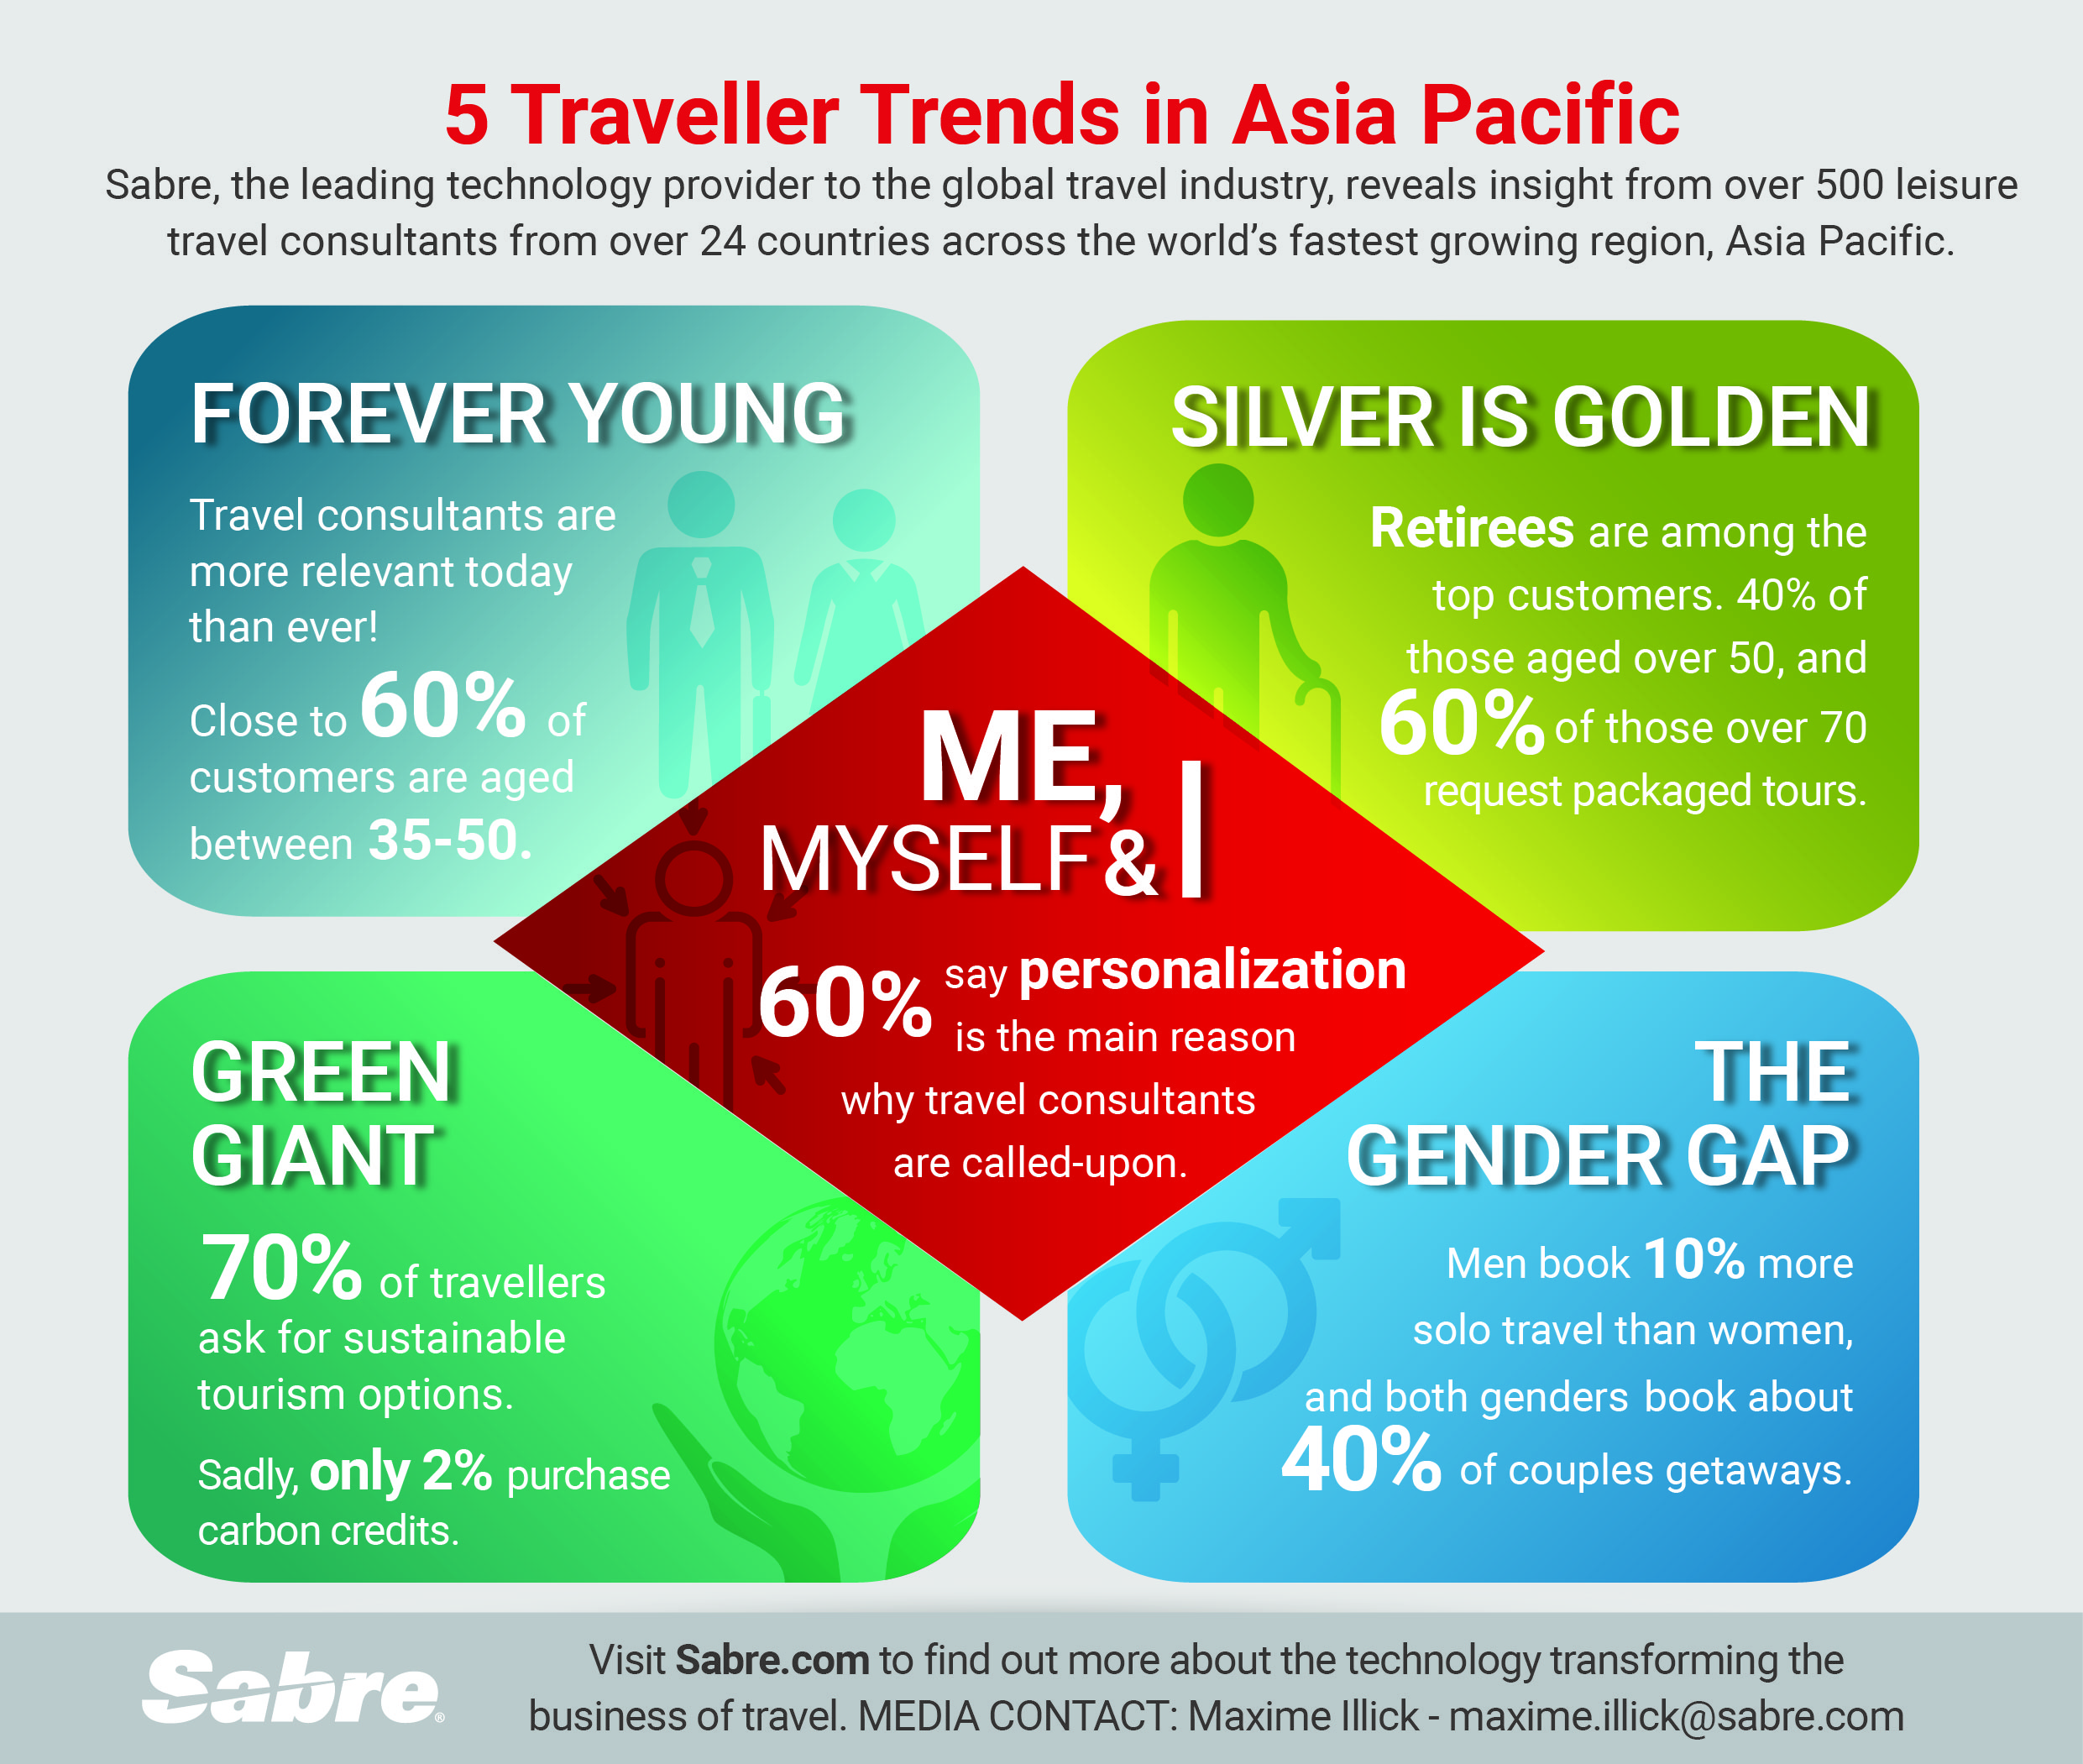 Business Trends 2020.Looking Towards 2020 Sabre Survey Reveals Top Traveler